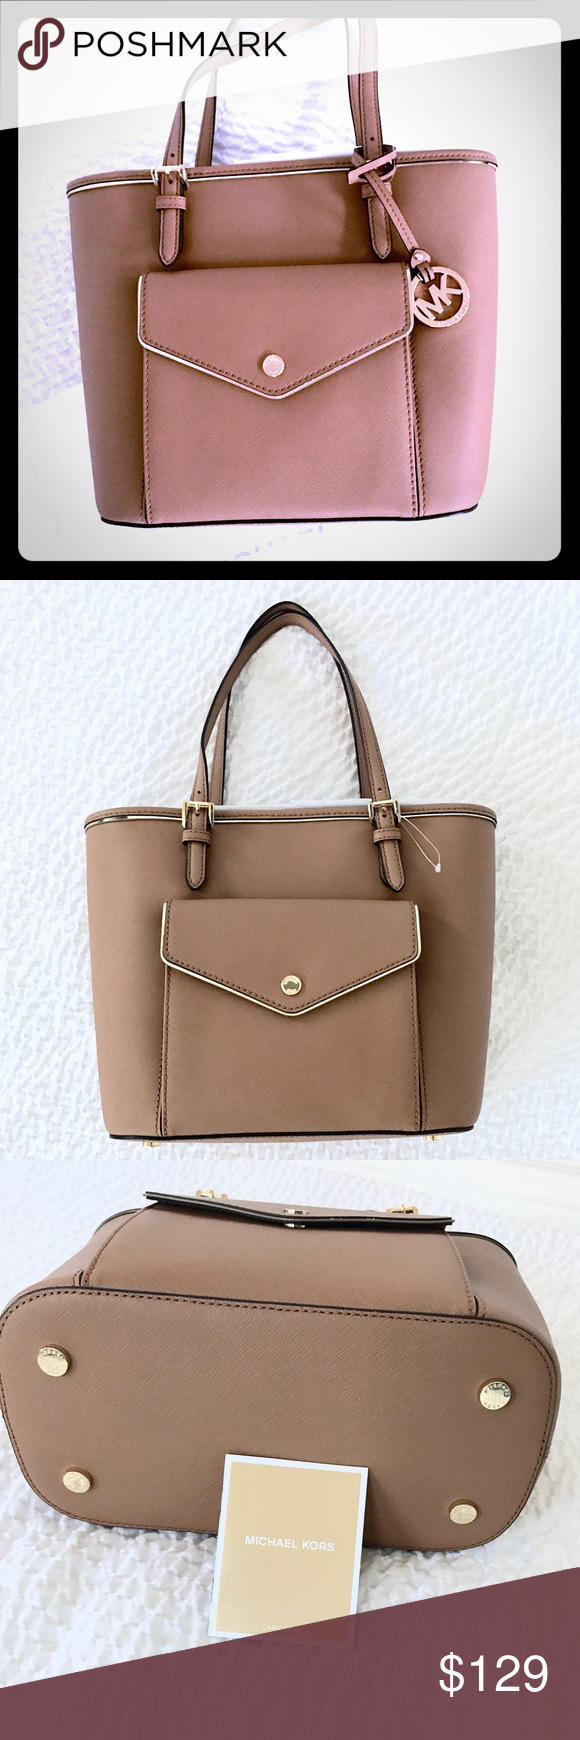 c0a2137bb124 New Authentic MK saffiano frame medium tote acorn Michael Kors' Saffiano  Frame tote keeps jet